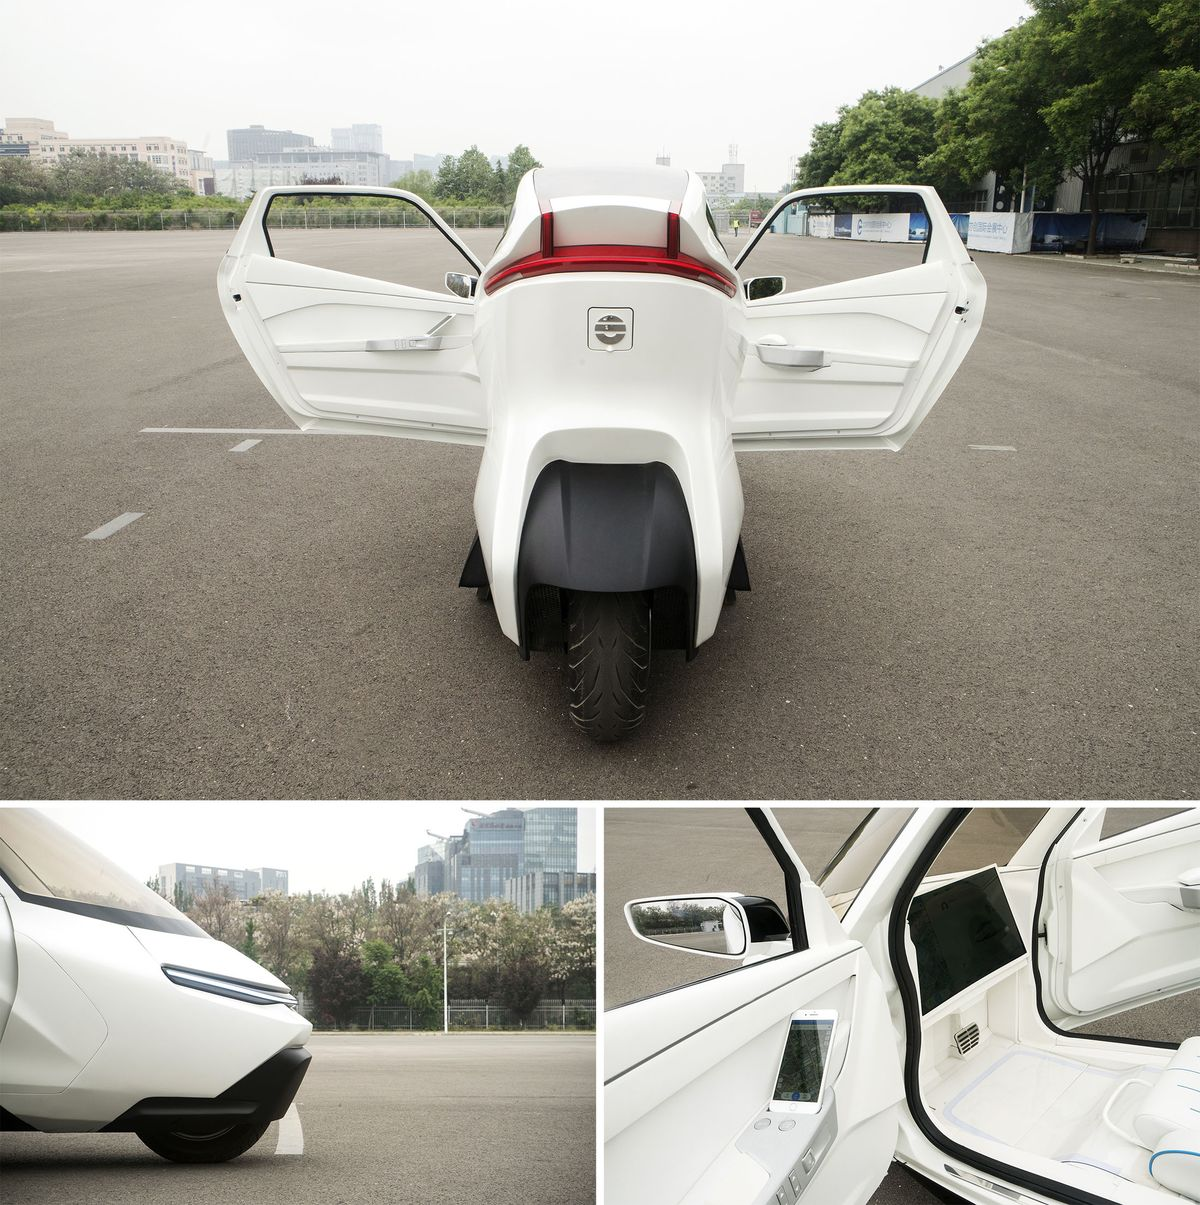 Relates To The Two Wheeled Electric Car Of Future Is Being Tested In China